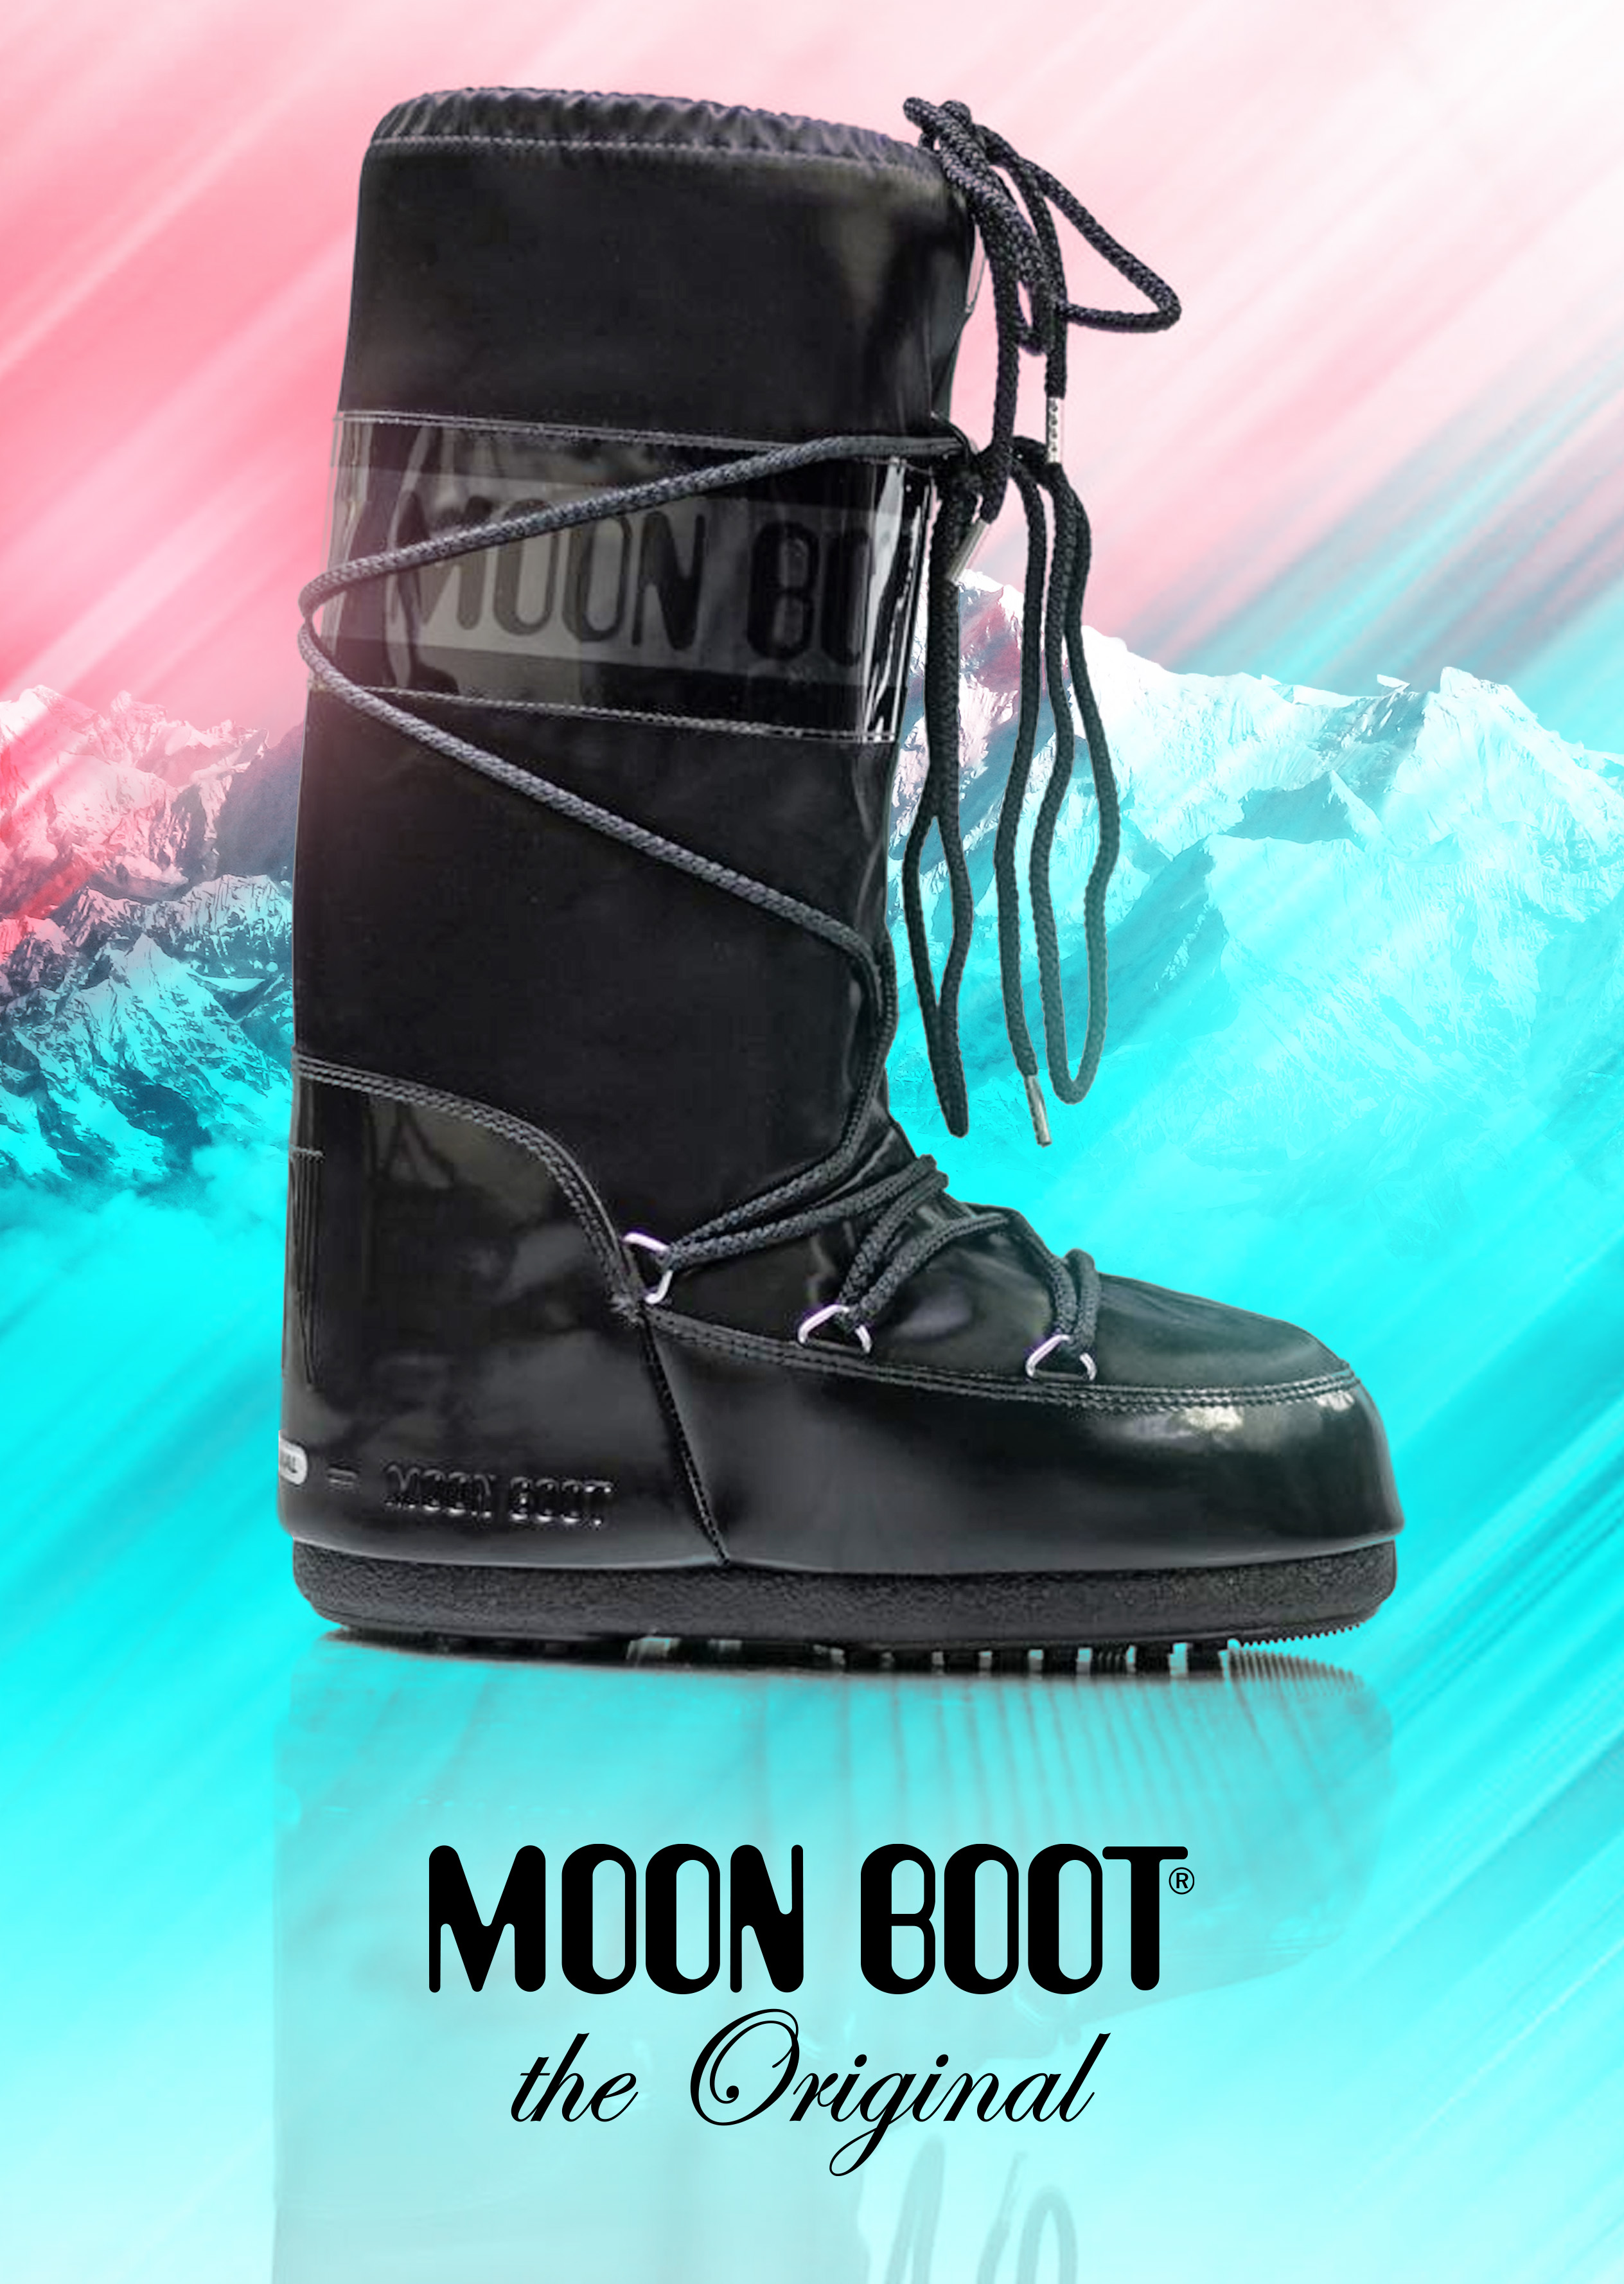 Moon Boot_Office_Shoes_Srbija_aw20_I_A